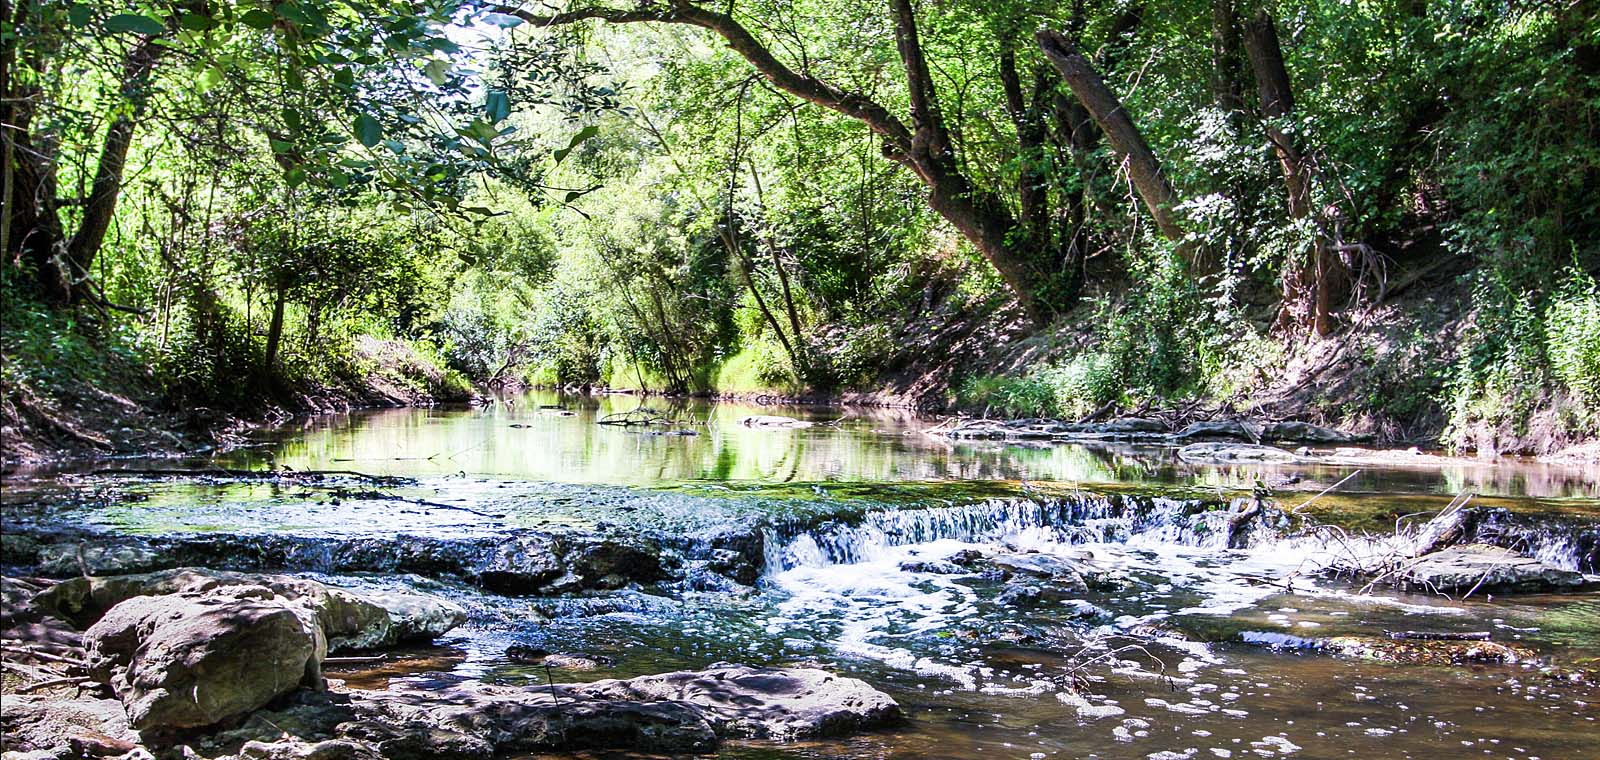 River in a Forest in Texas | Desert Flower Realty